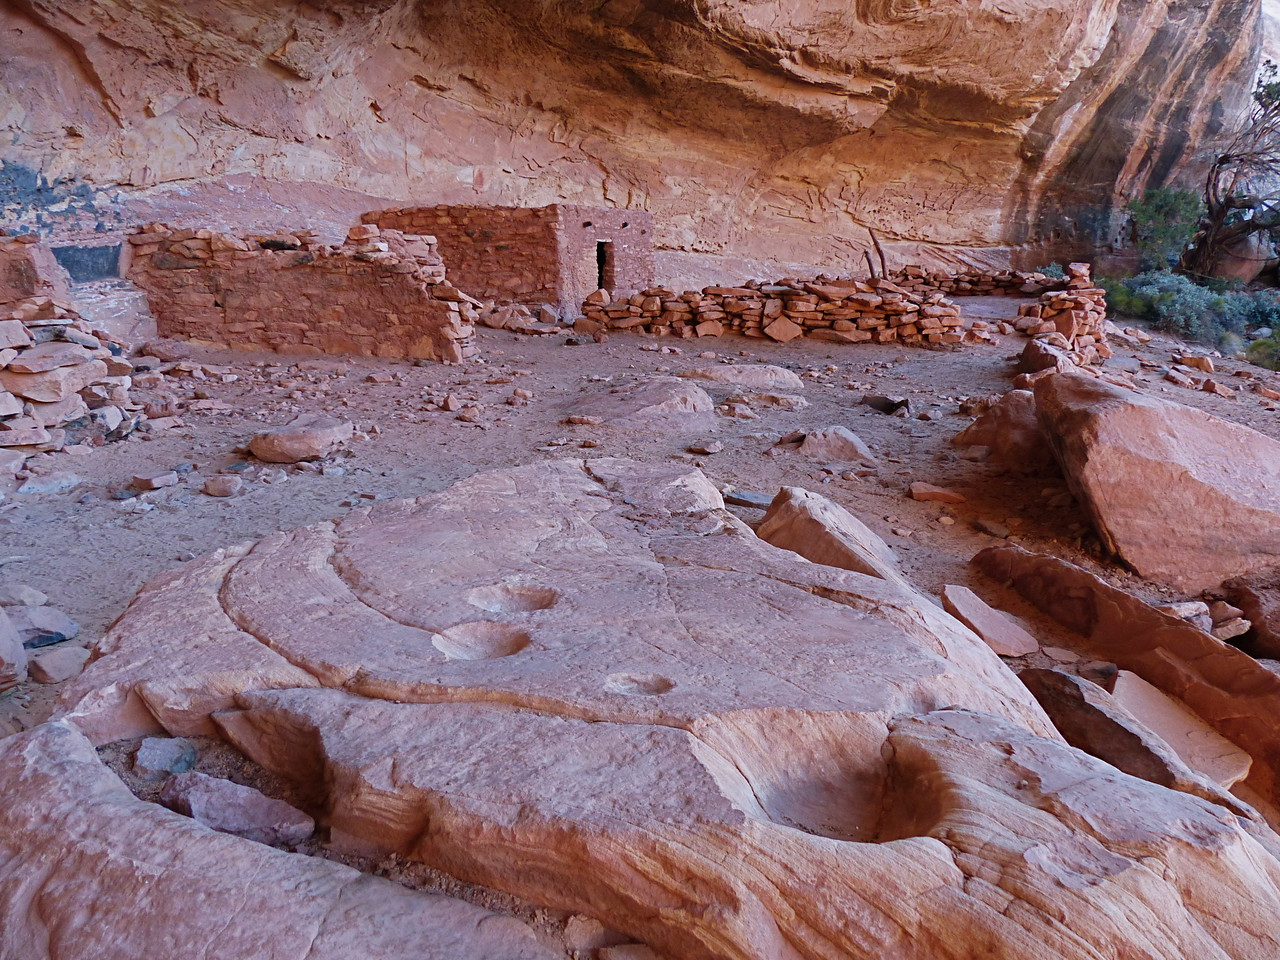 On the morning of Day 5, our last day in the canyon, we checked out Perfect Kiva Ruin.